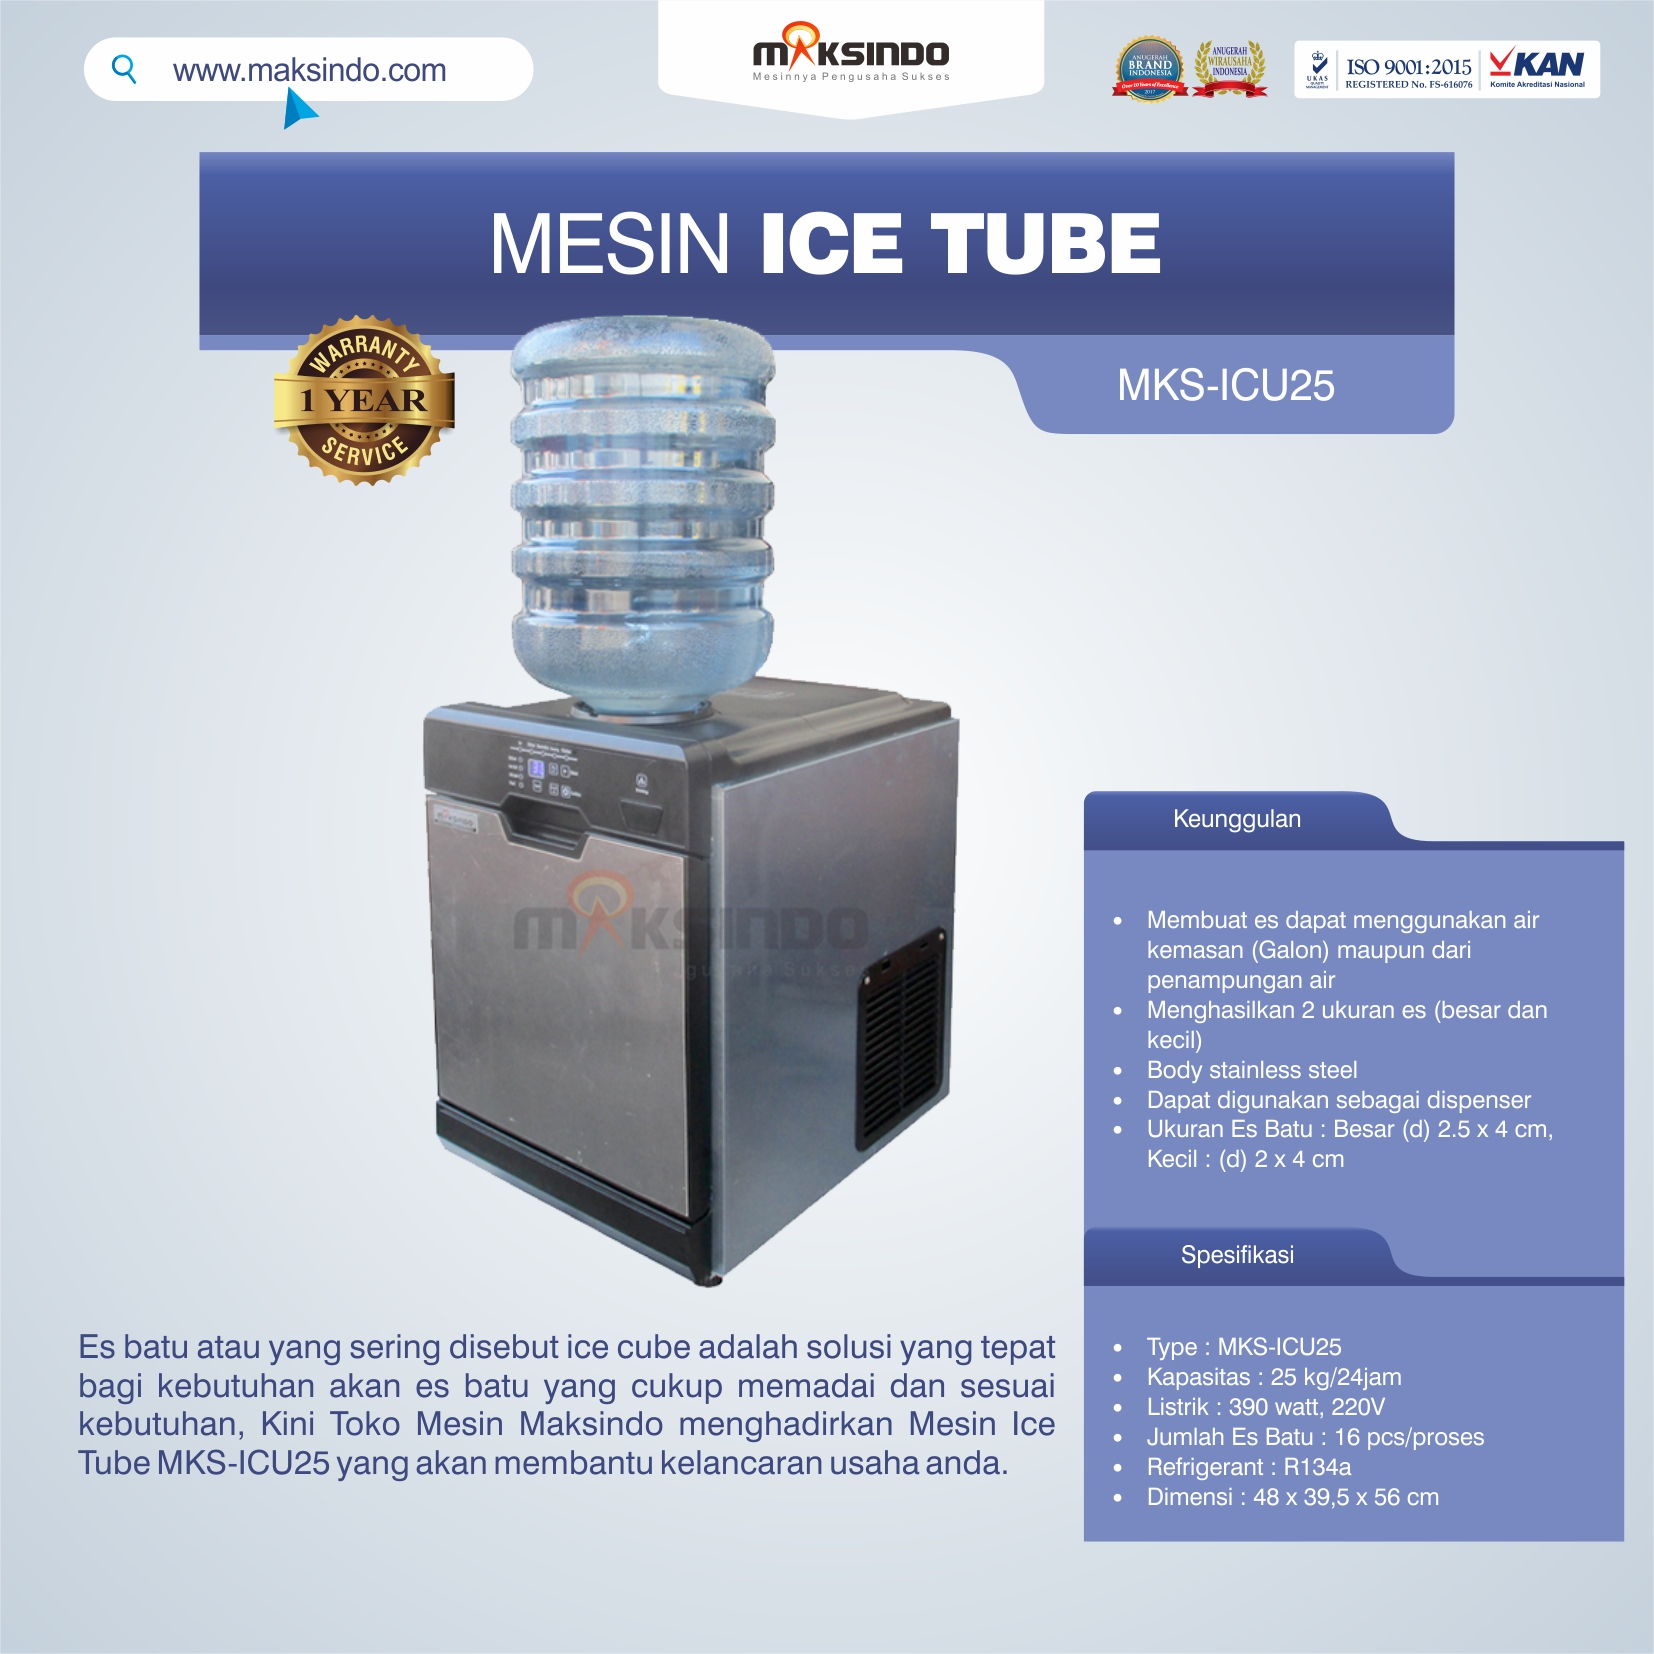 Jual Mesin Ice Tube MKS-ICU25 di Banjarmasin